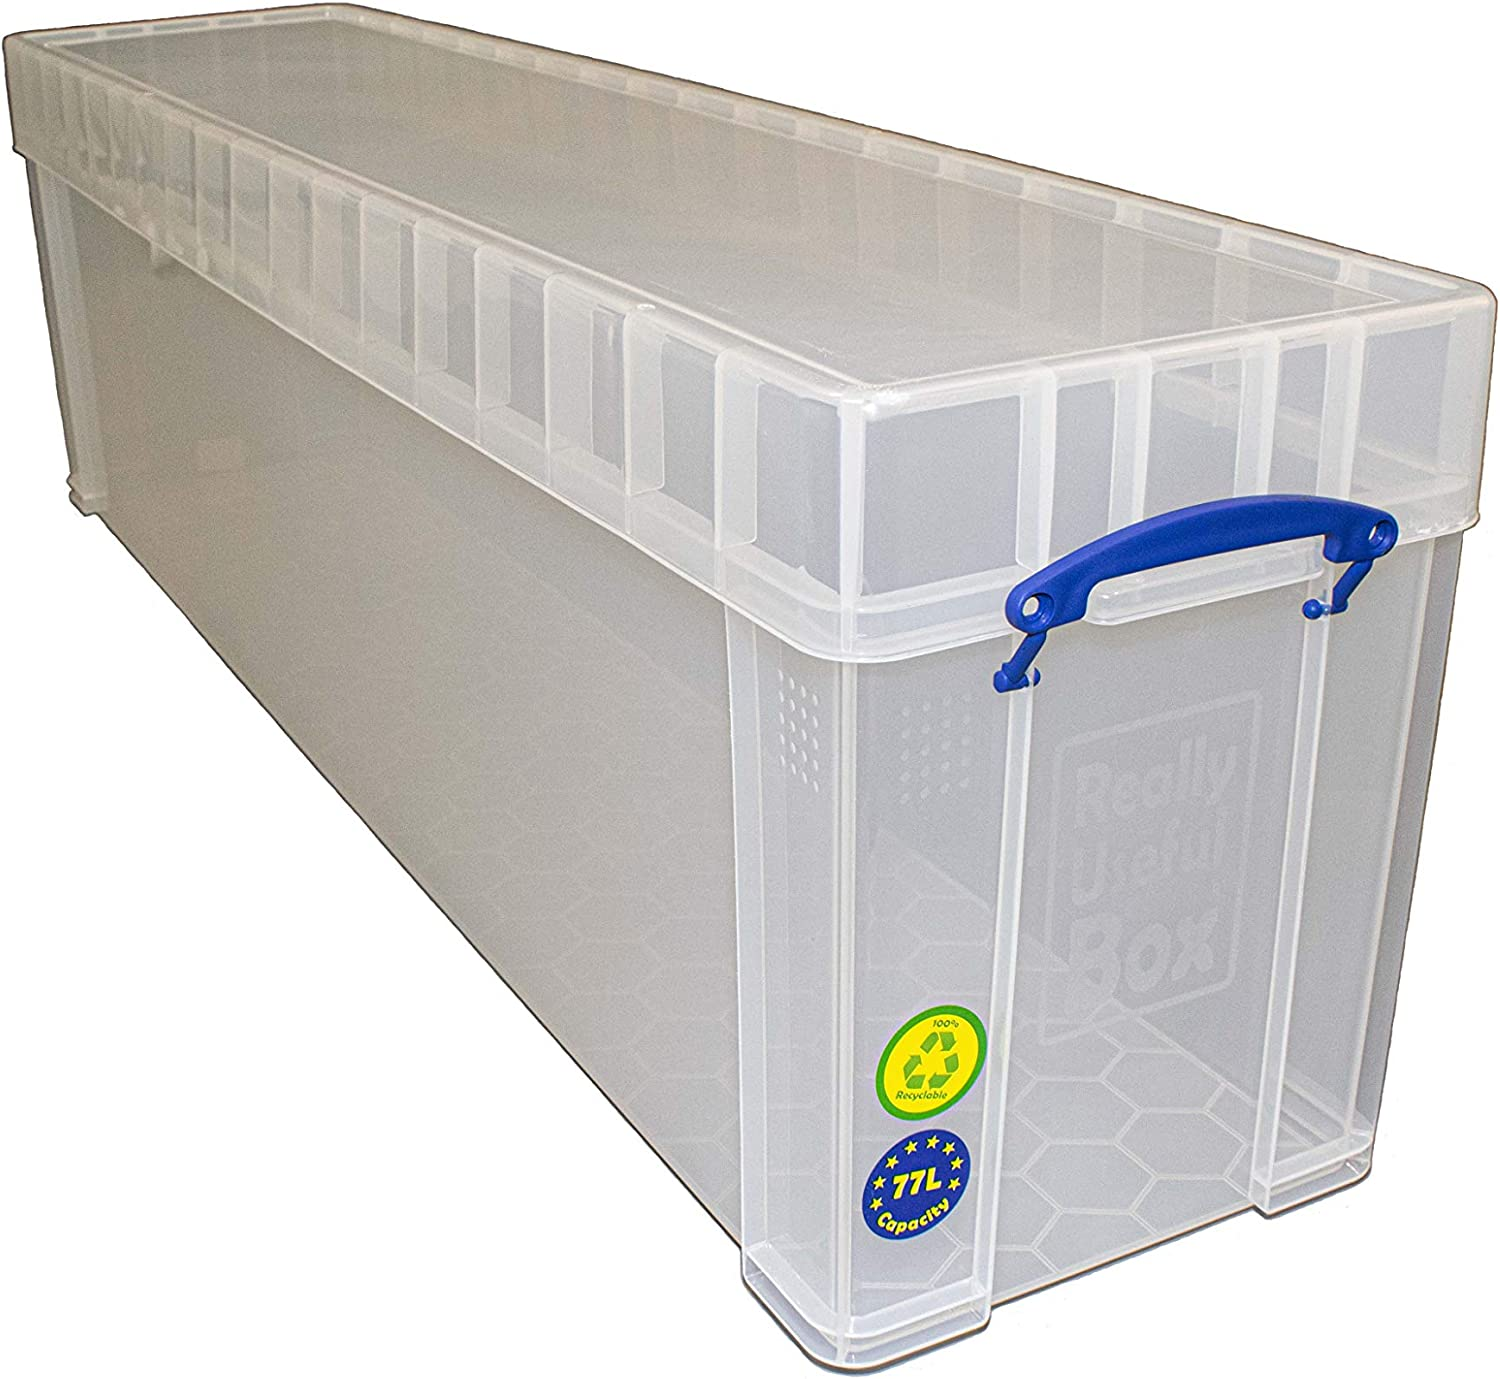 Really Useful High quality new Storage Box Litre Clear Max 52% OFF 77